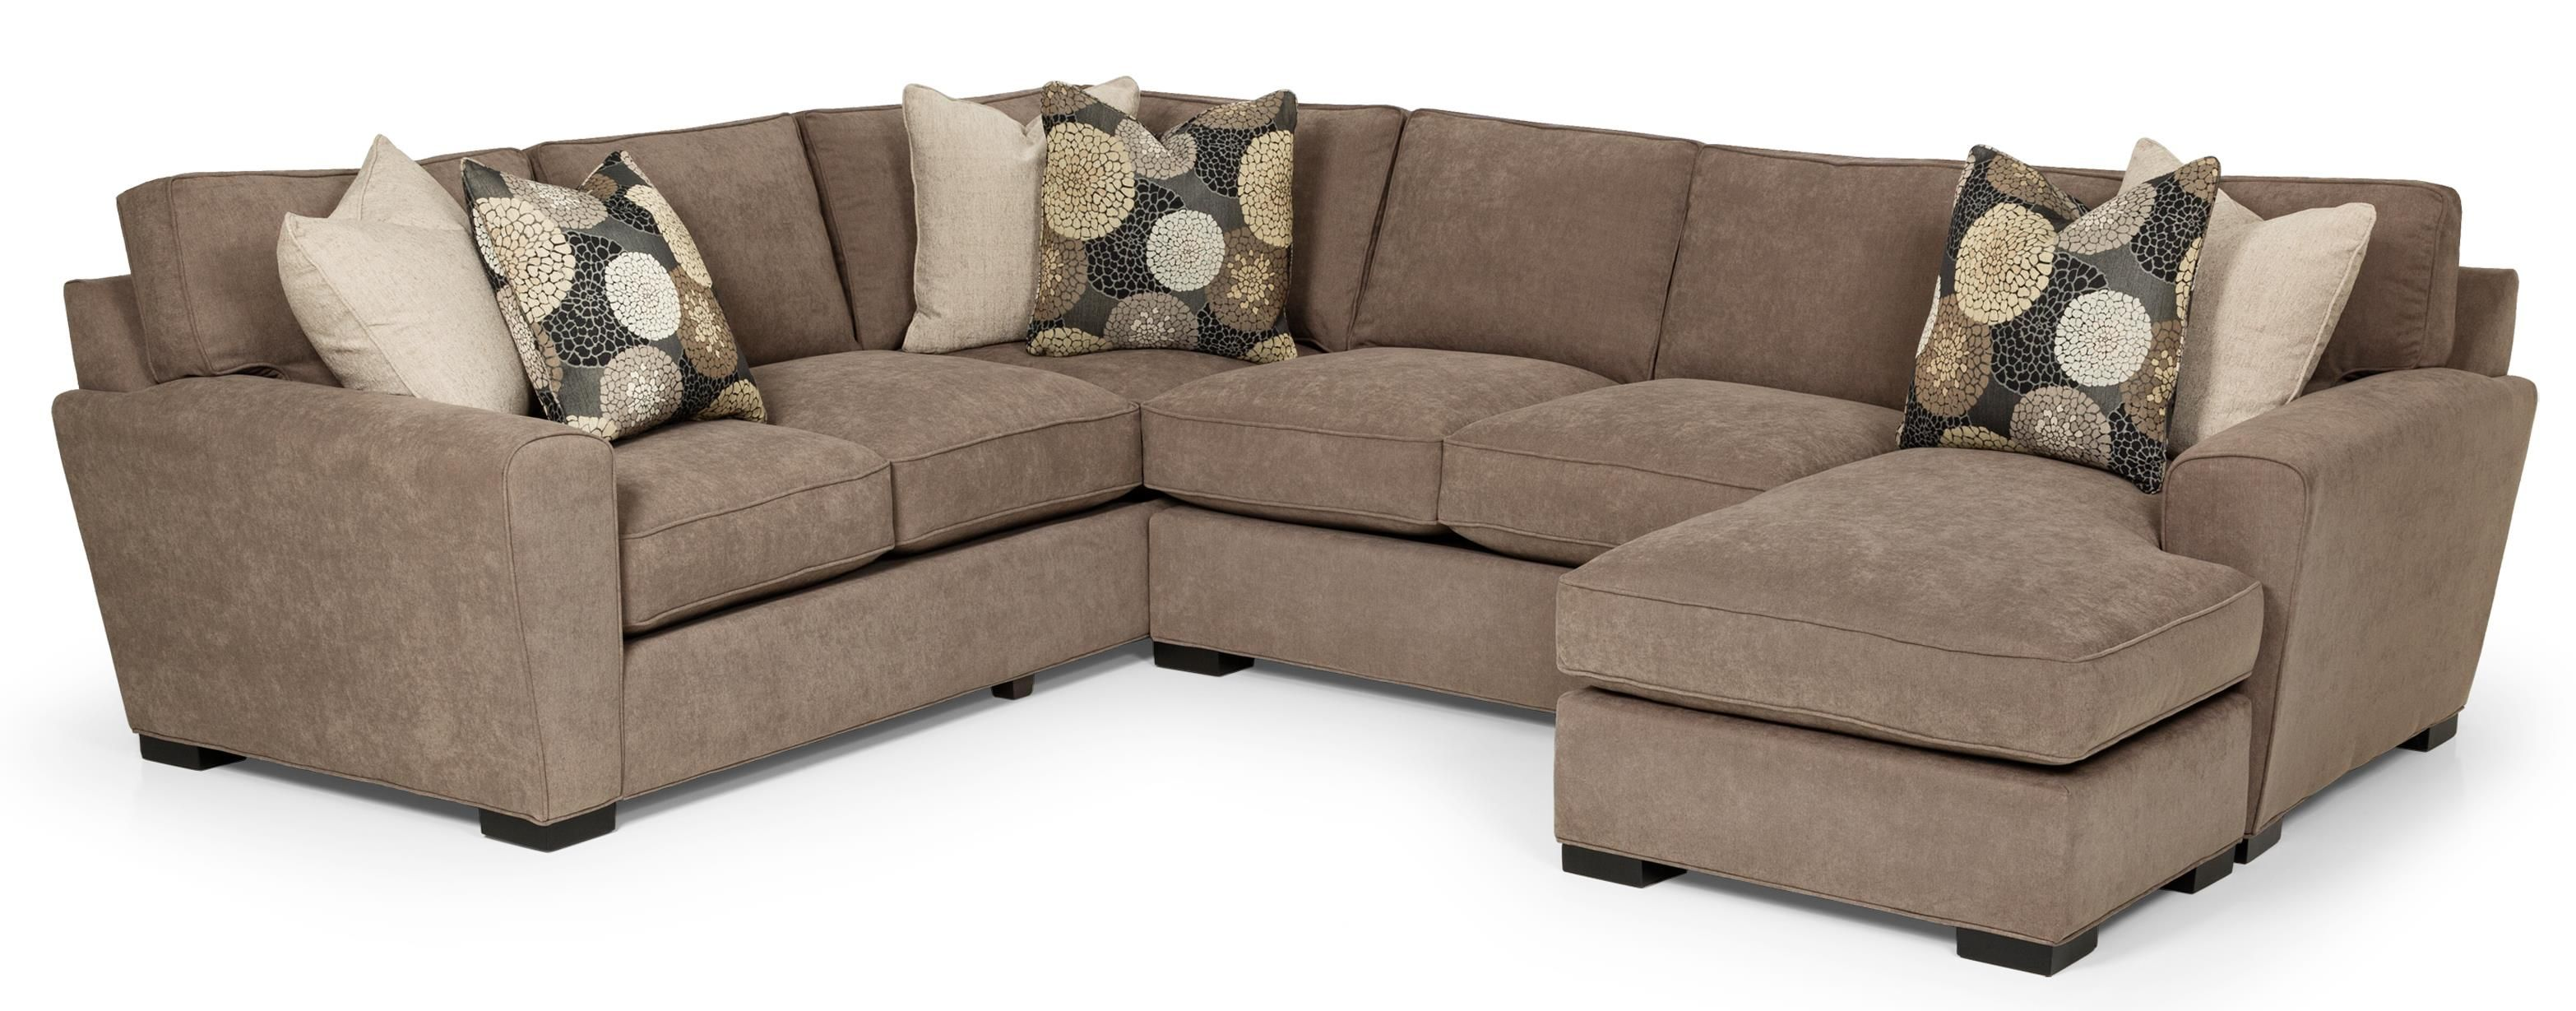 Terrific 282 Casual Sectional Sofa By Stanton Living Dining Room Caraccident5 Cool Chair Designs And Ideas Caraccident5Info